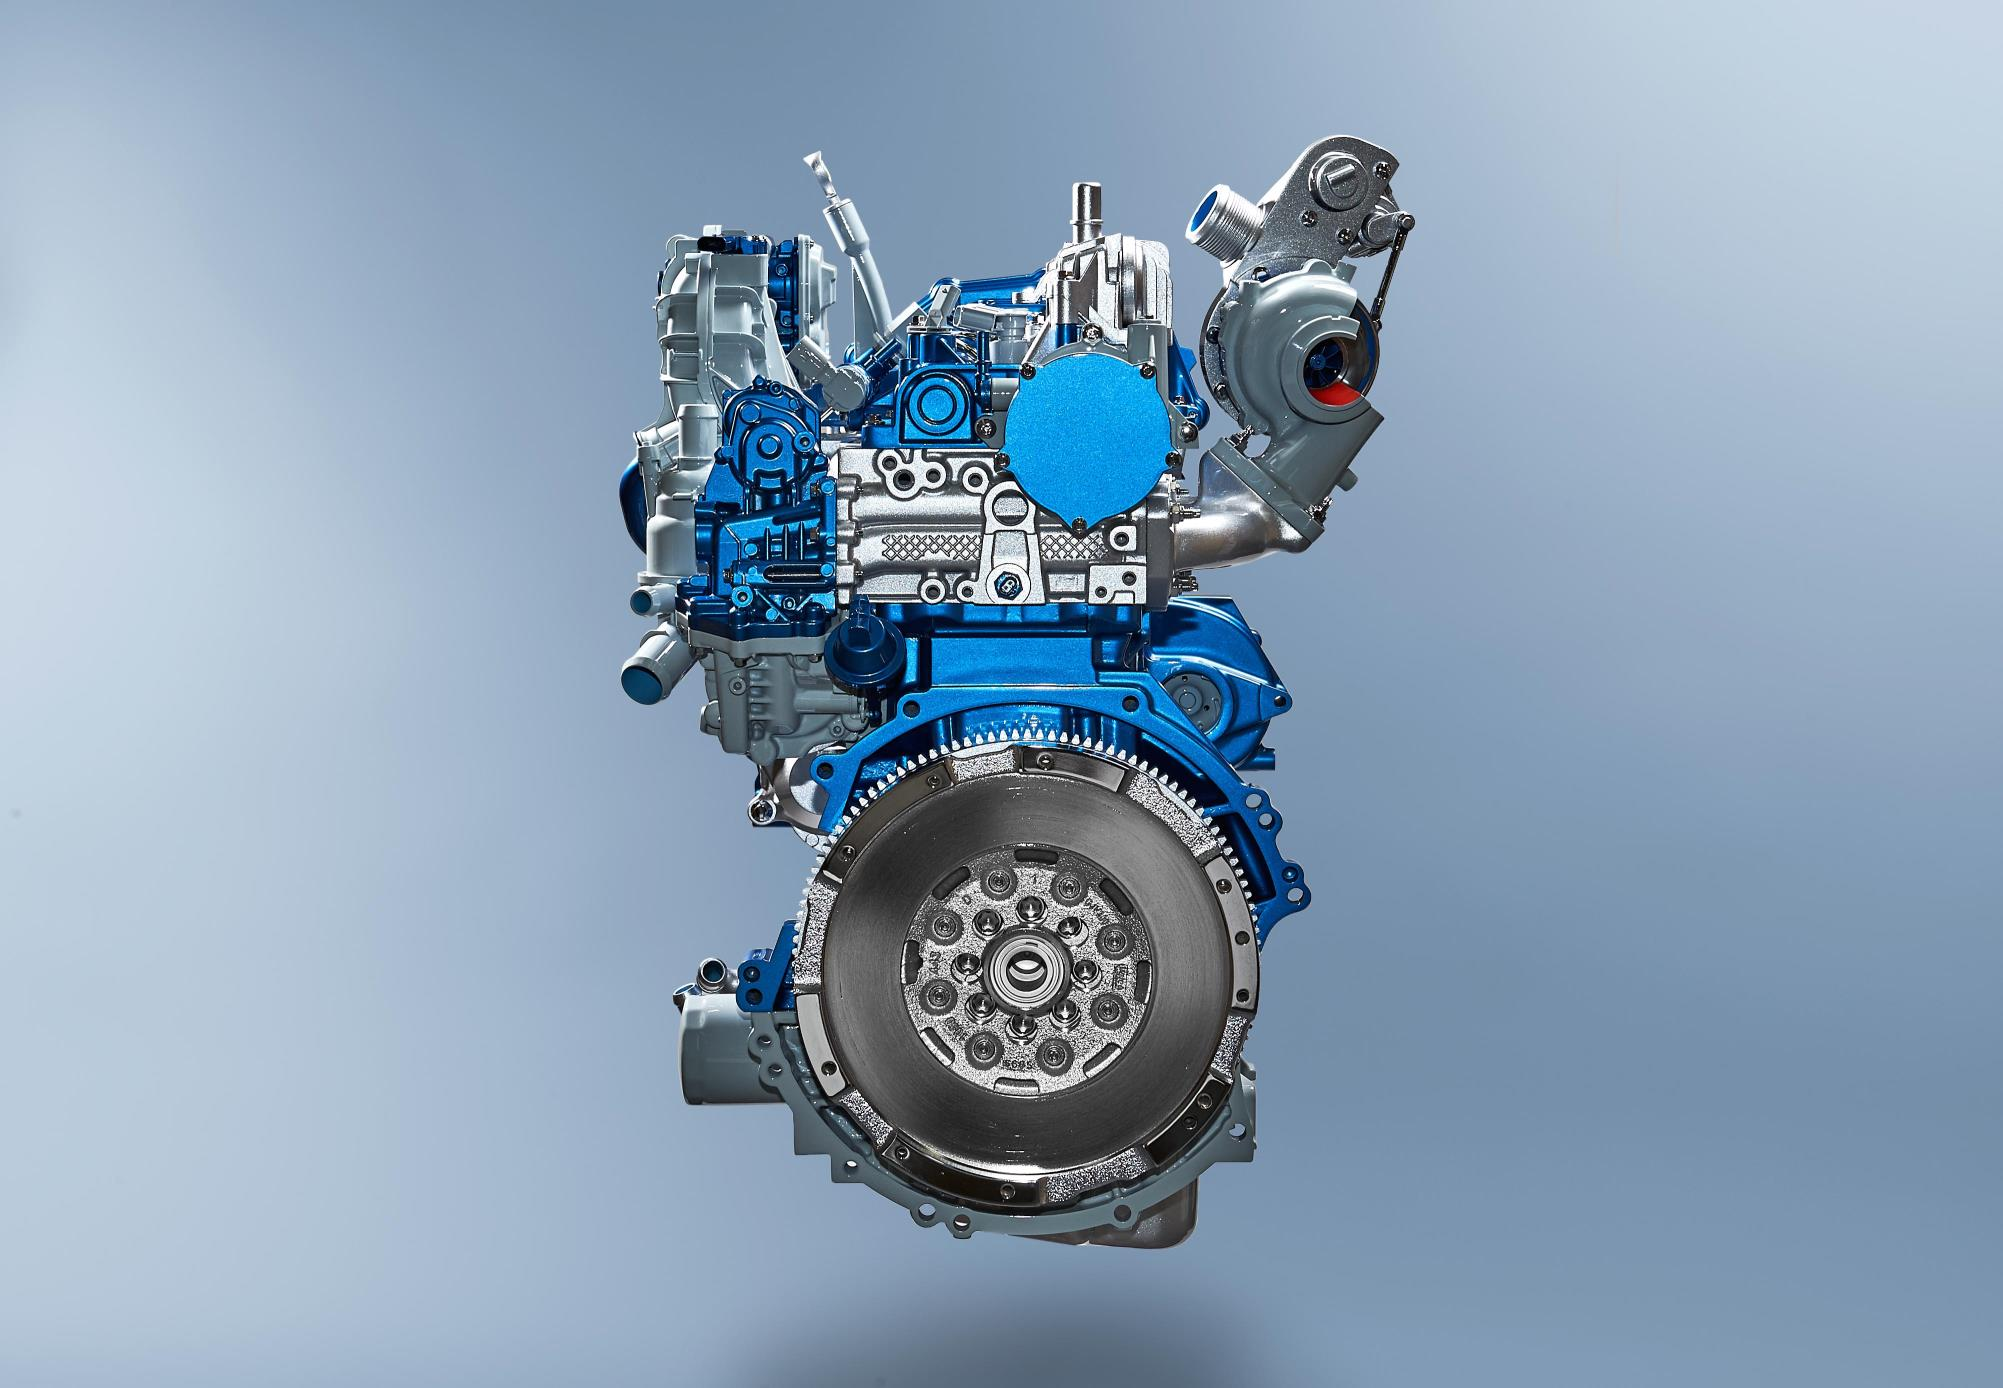 2 0 ford ecoblue engine described as being a  u201cdiesel game